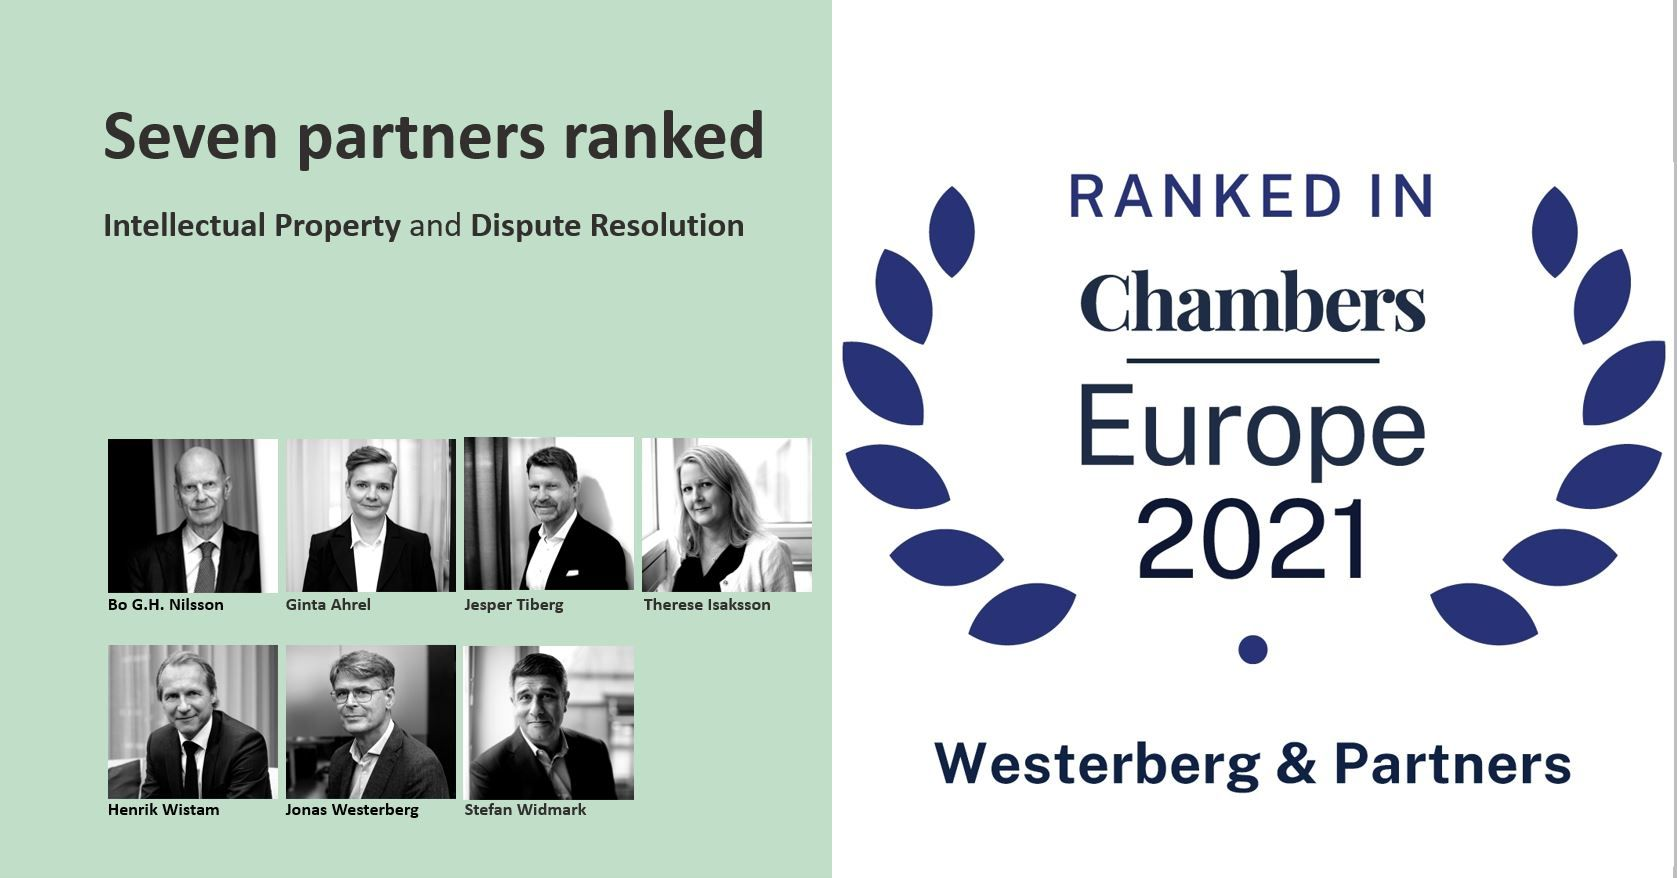 Ranked in Chambers Europe 2021.